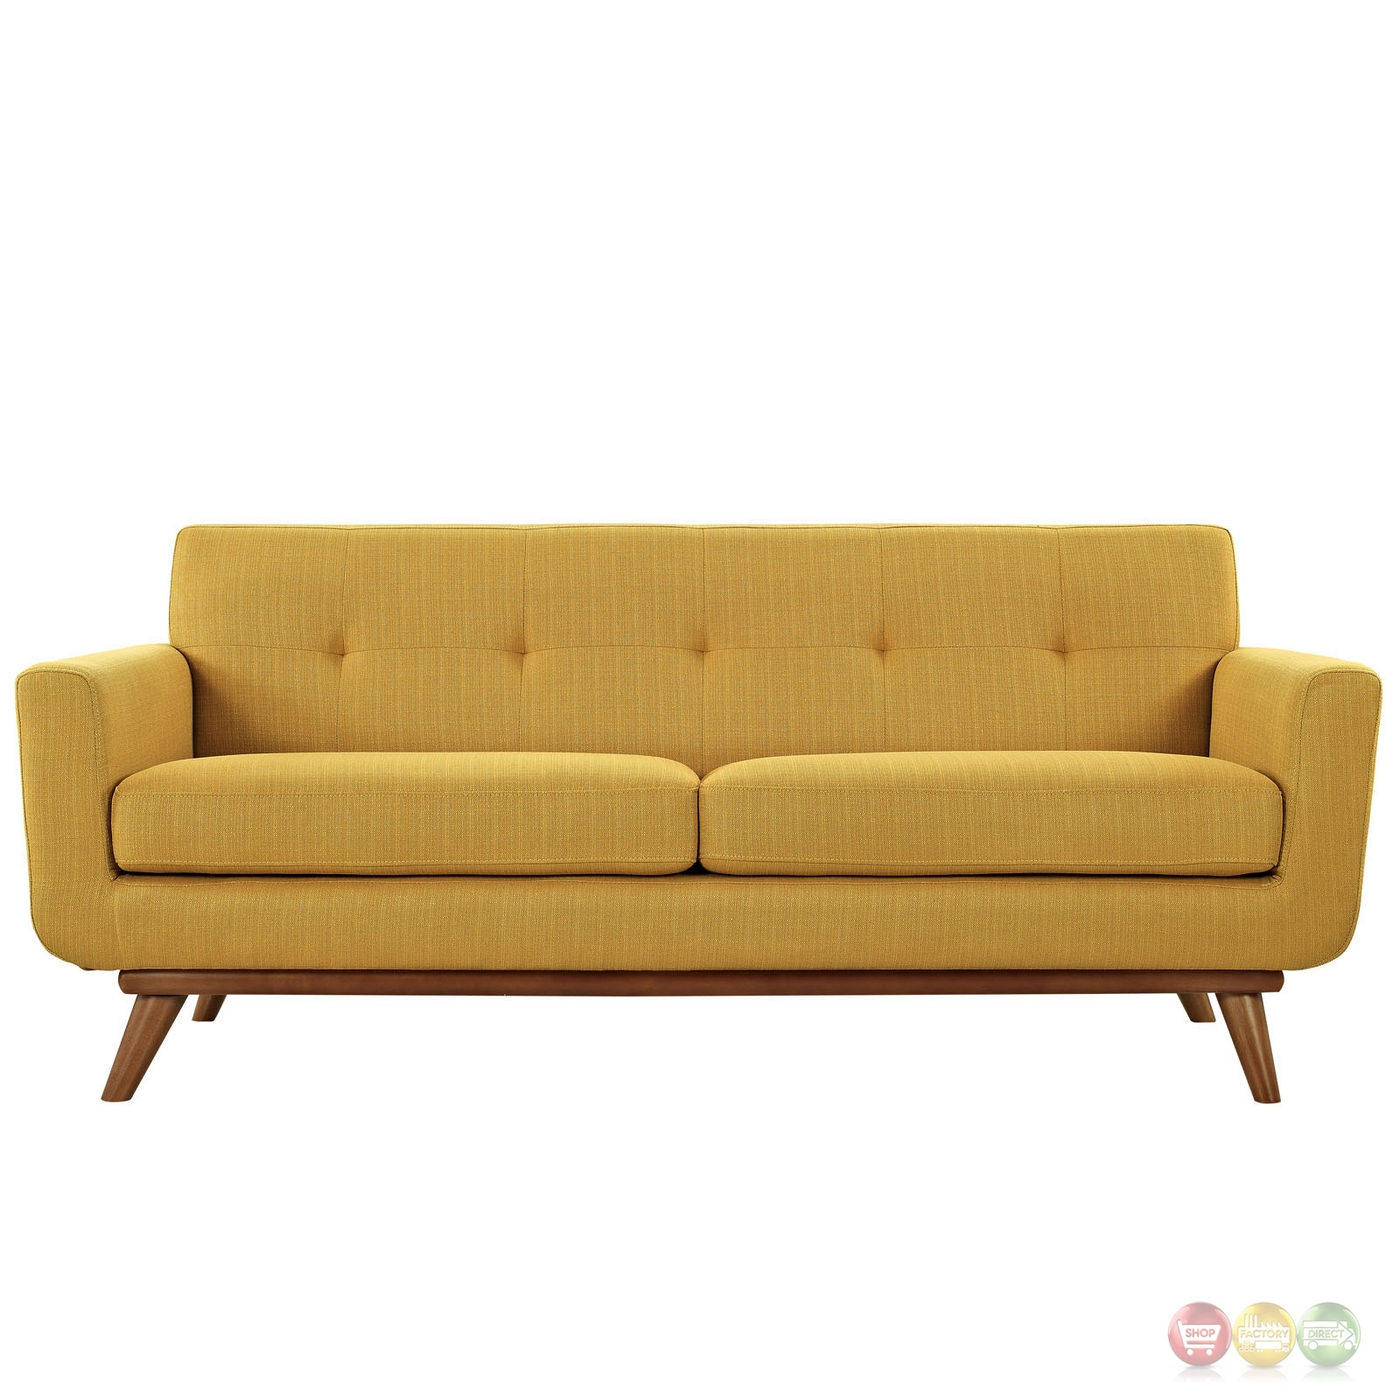 Engage Contemporary Upholstered Loveseat With Wooden Legs Citrus